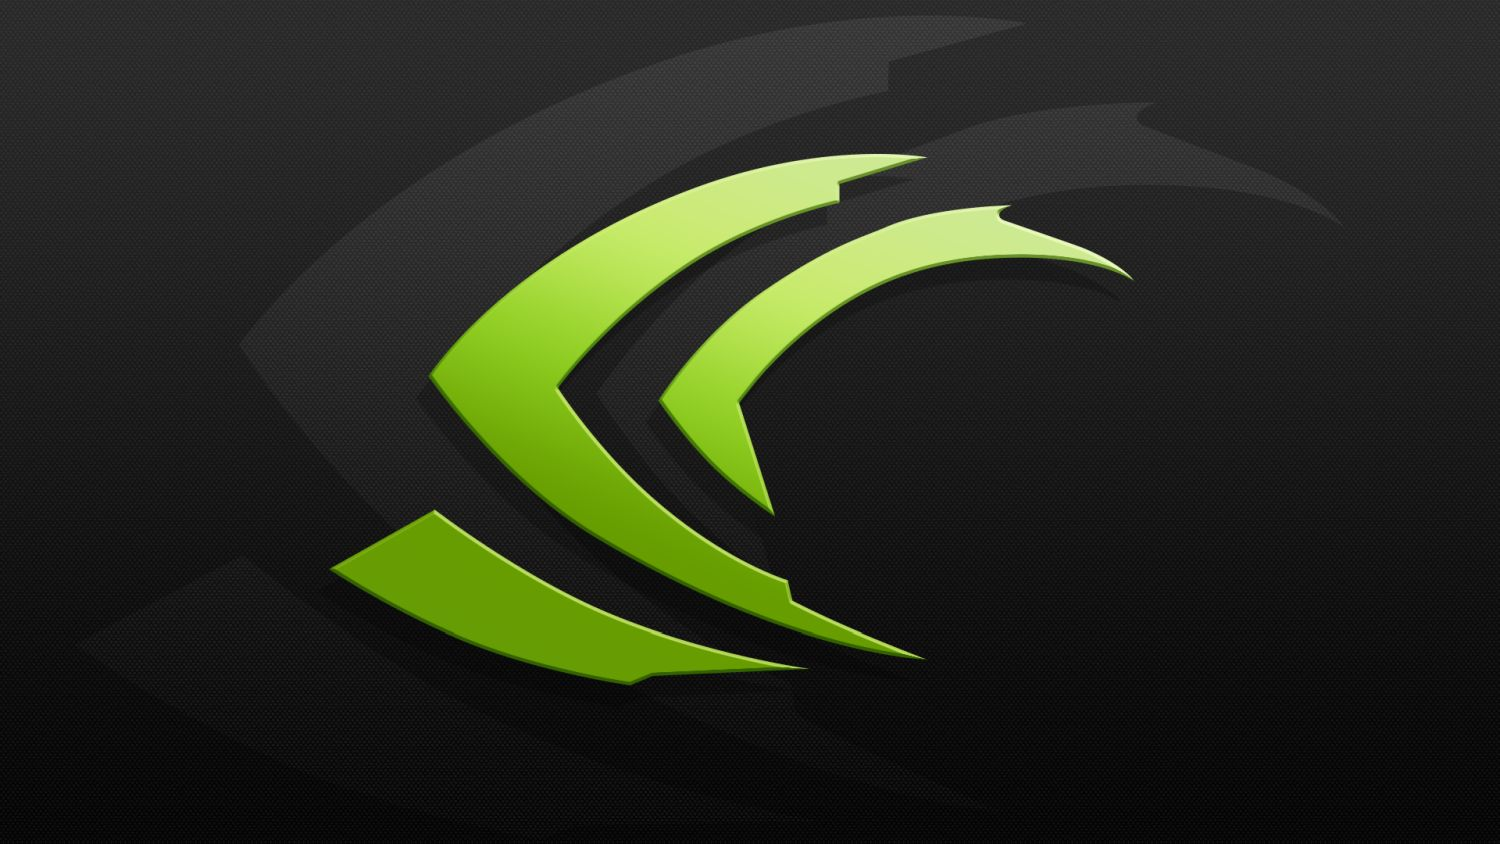 Nvidia Background